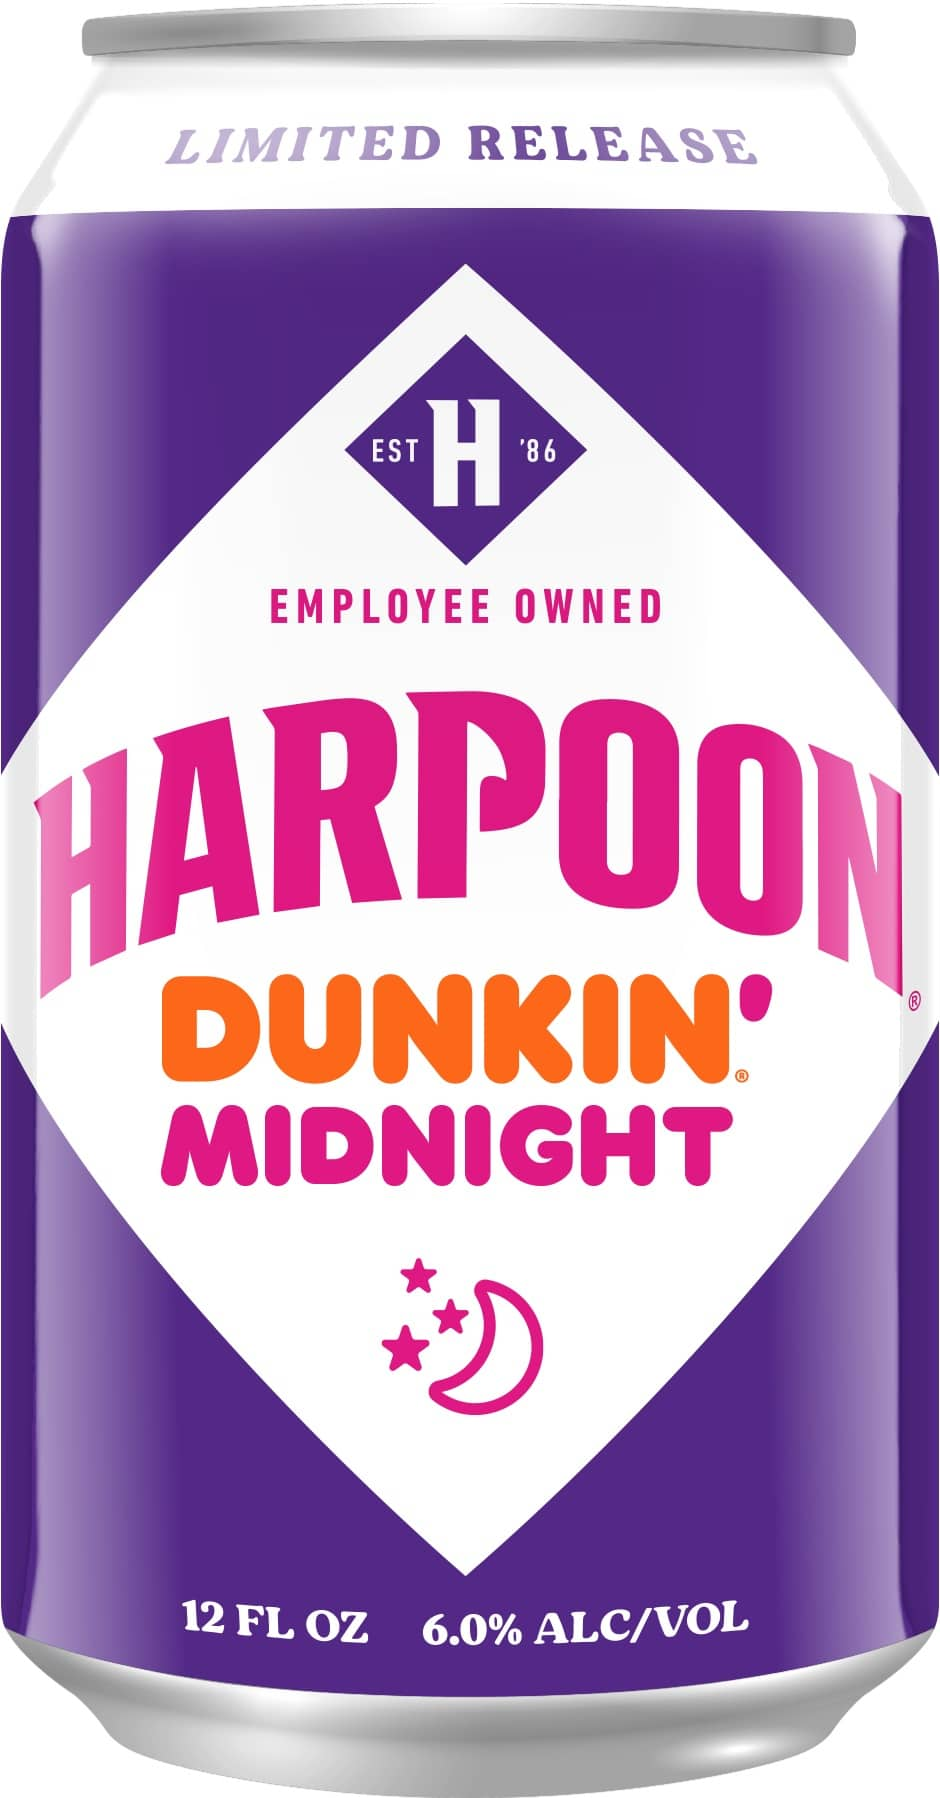 Harpoon Brewery is releasing 3 new Dunkin' Donuts-inspired beers for fall 19